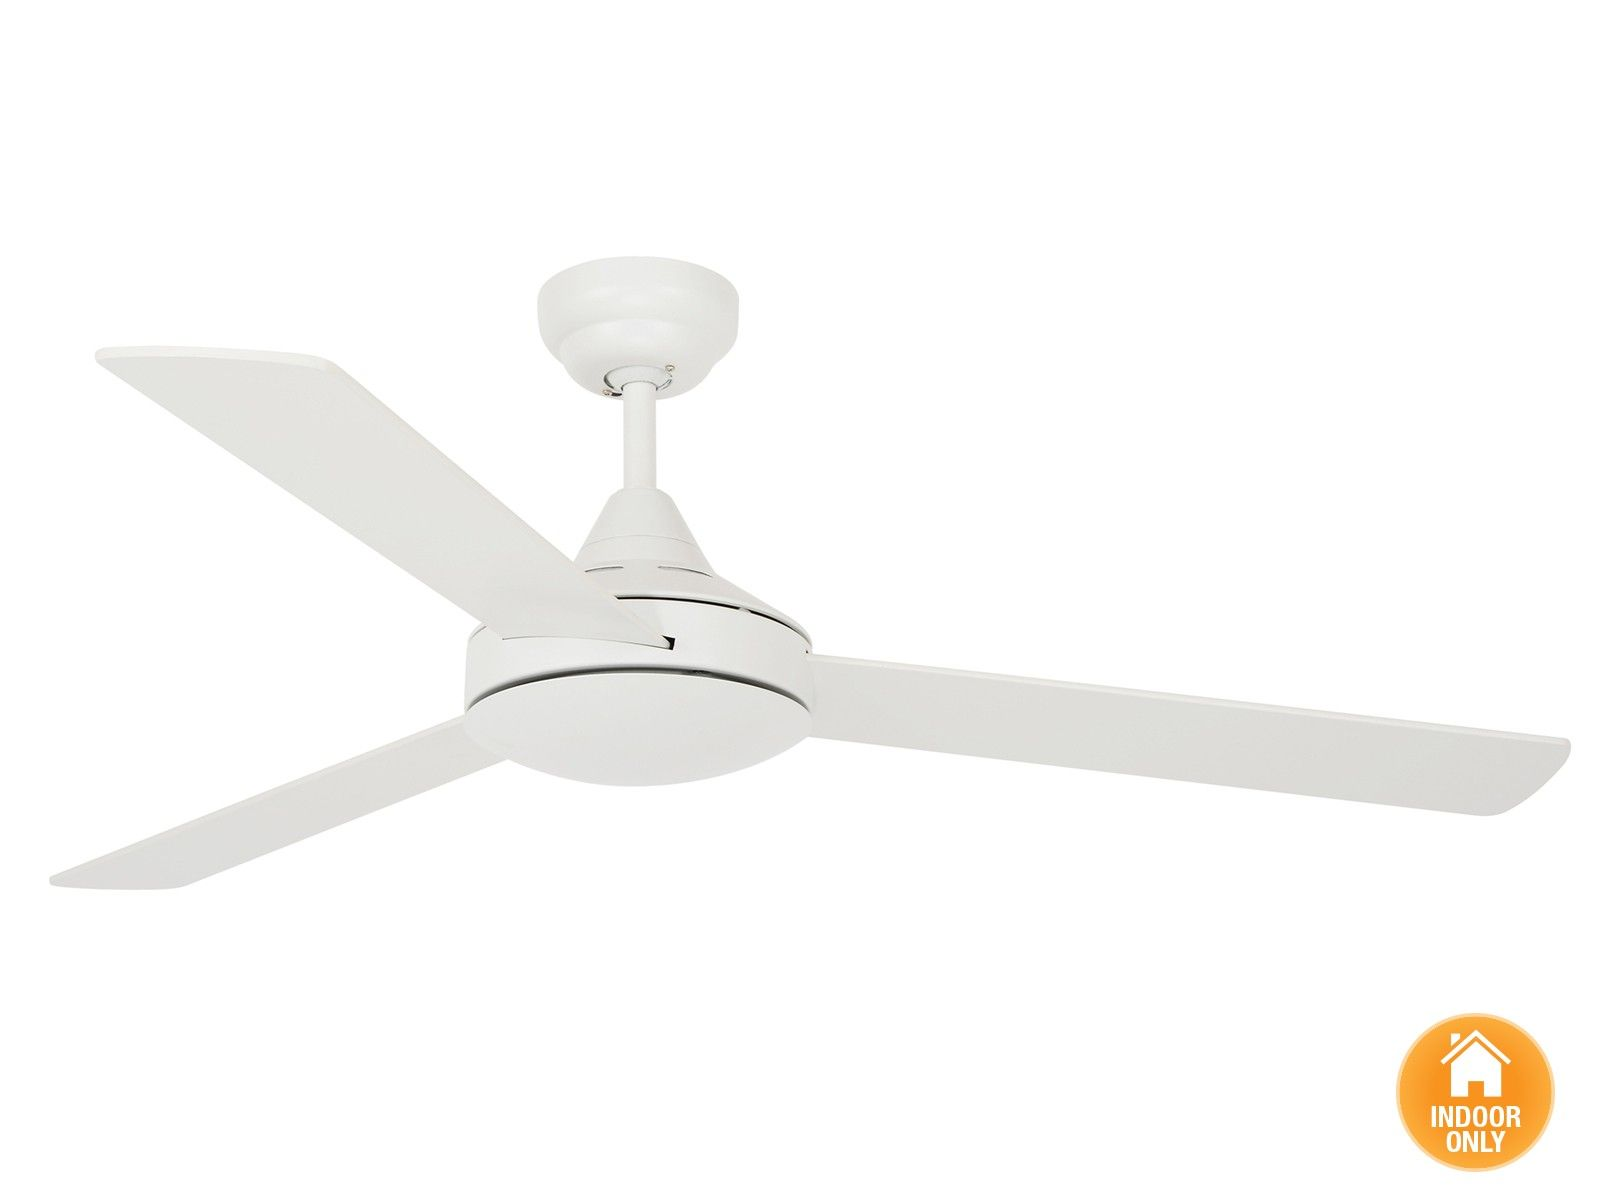 Airfusion Airlie 122cm 3 Blade Fan Only In White White Ceiling